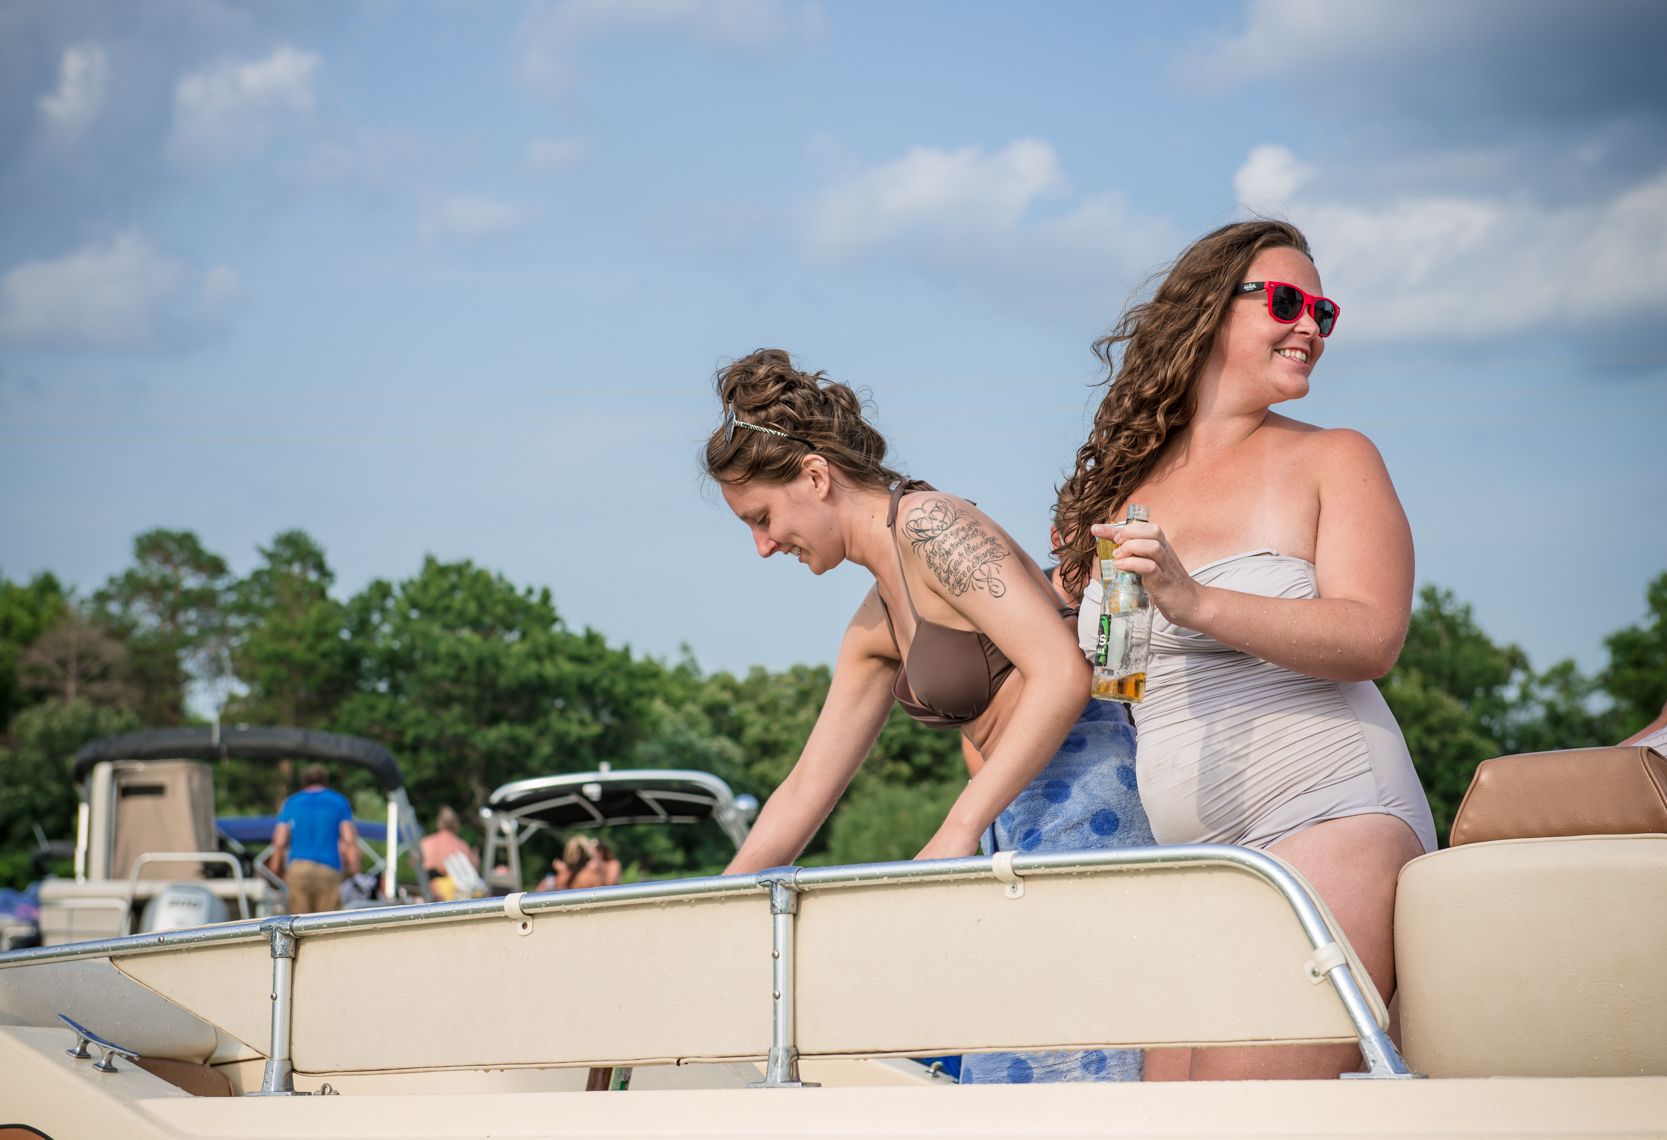 Young women on a pontoon boat, happy, laughing, lifestyle, smiling, real beauty, tattoos, plus size, confident, summer fun, lake party real people, liquor, travel, Madison, Chicago, Nashville advertising, beverage, lifestyle, photojournalist, photographer